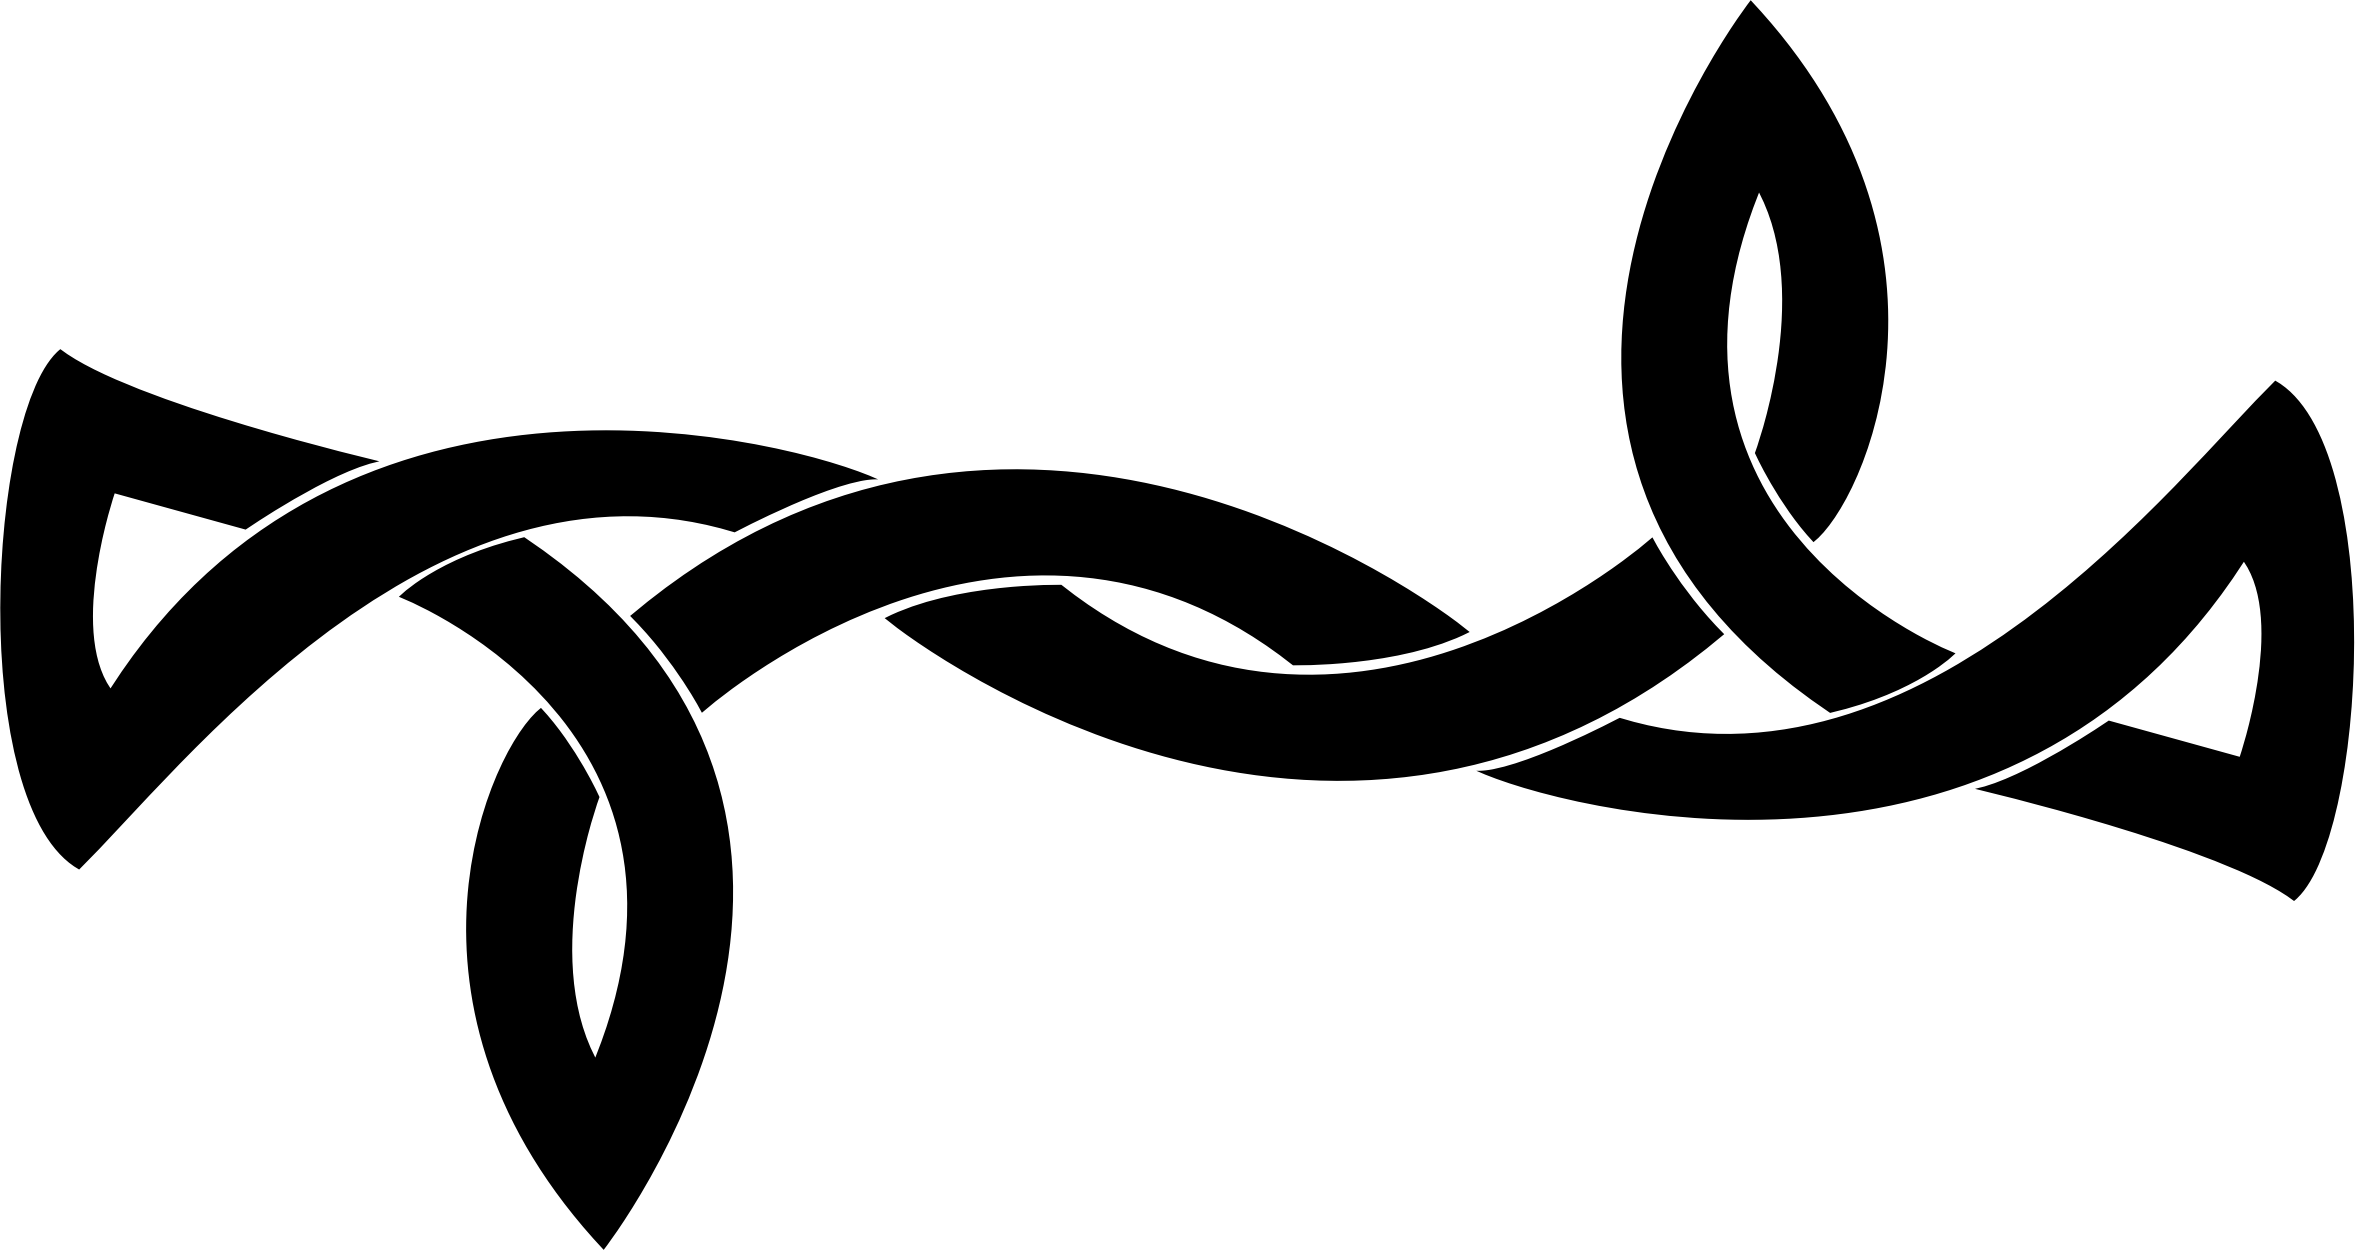 Simple Celtic Knot transparent PNG - StickPNG